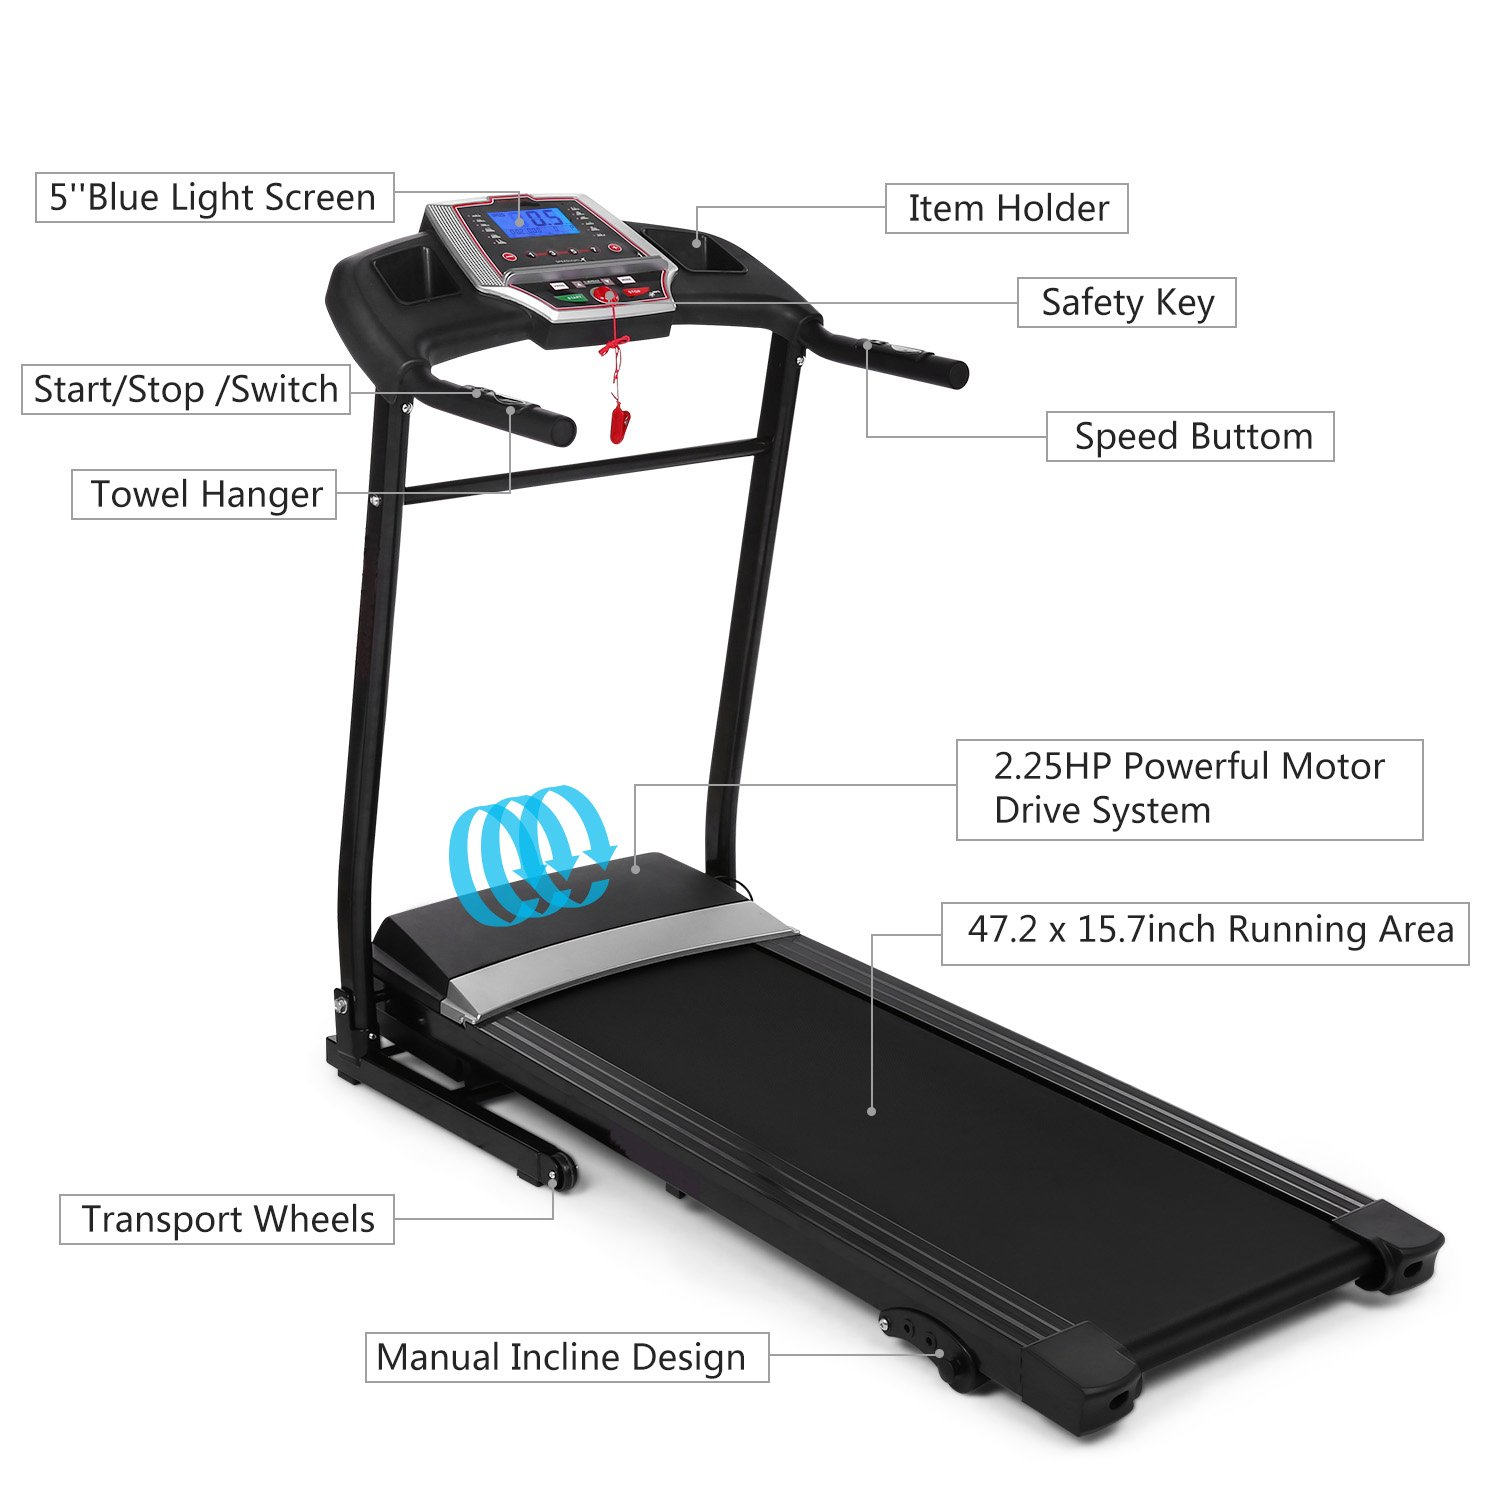 Miageek Fitness Folding Electric Jogging Treadmills with Smartphone APP Control, Walking Running Exercise Machine Incline Trainer Equipment Easy Assembly by Miageek (Image #2)